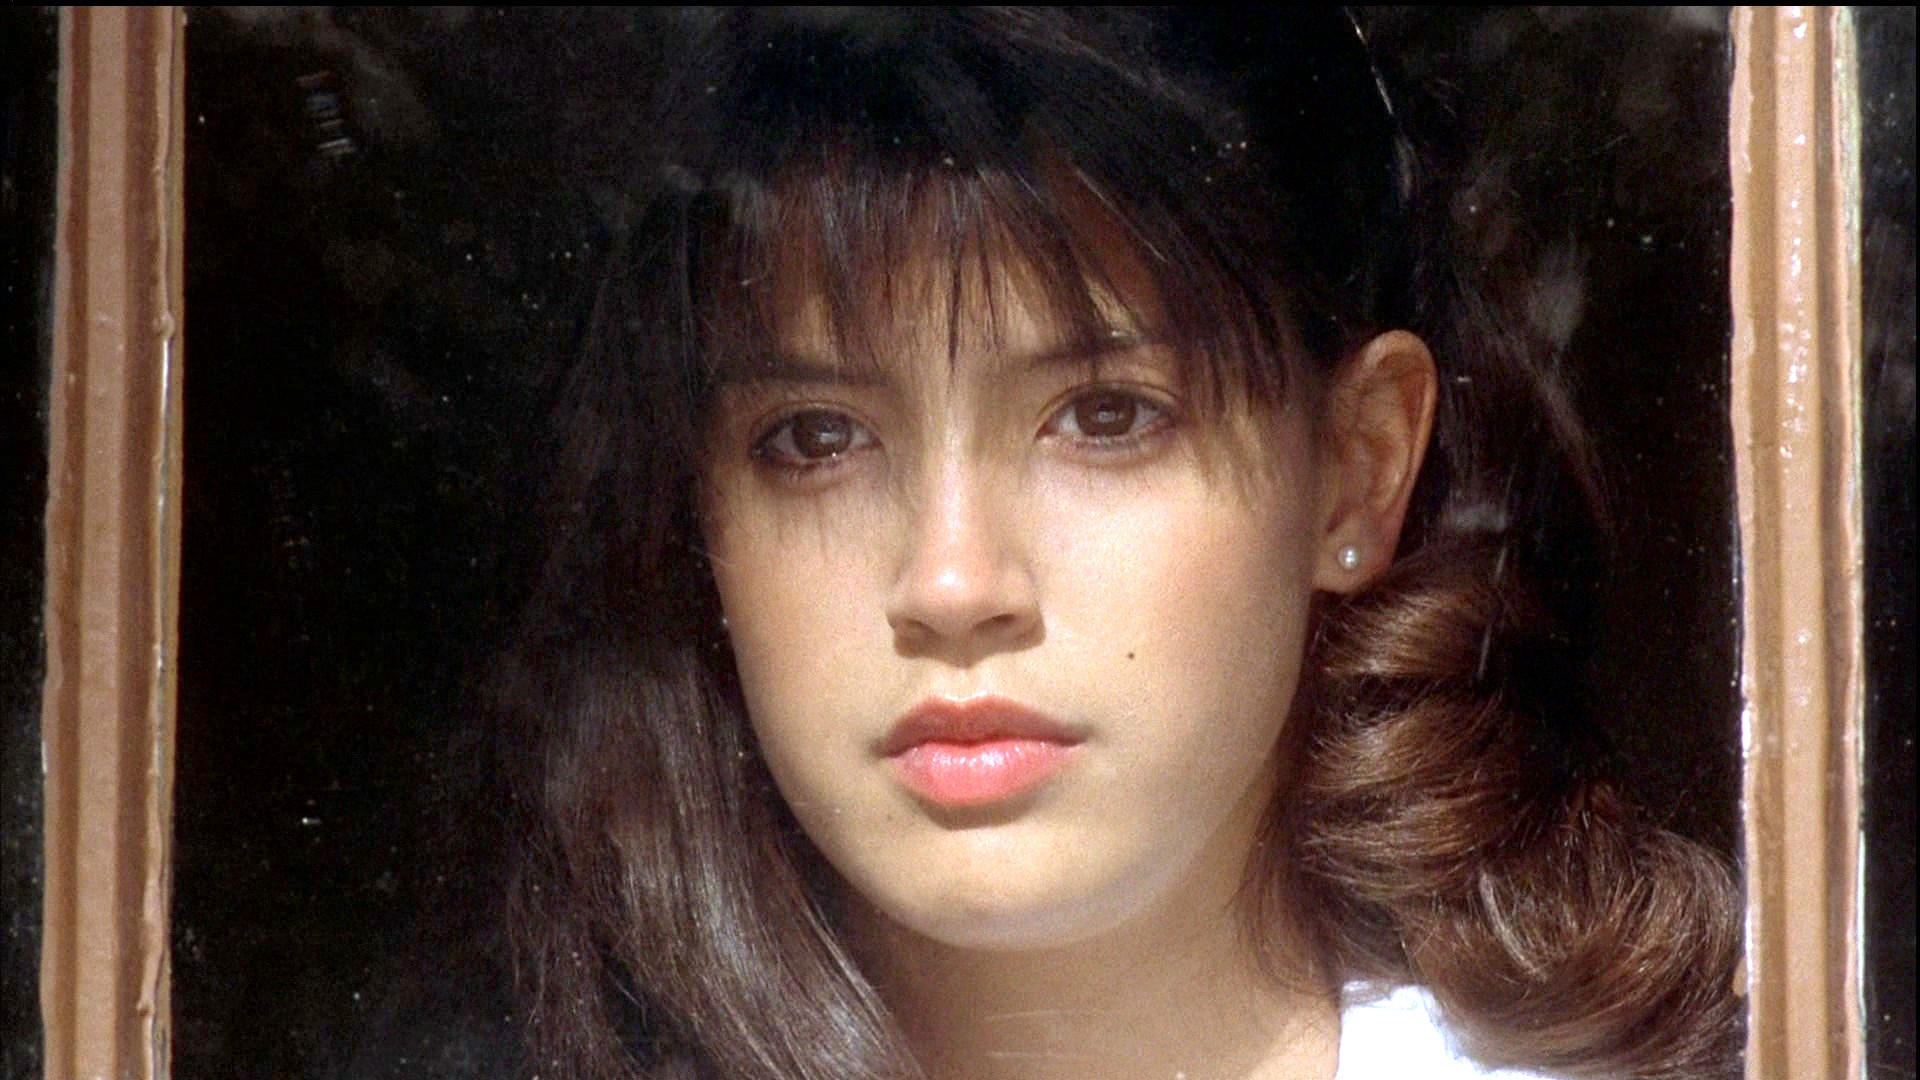 1920x1080 - Phoebe Cates Wallpapers 32